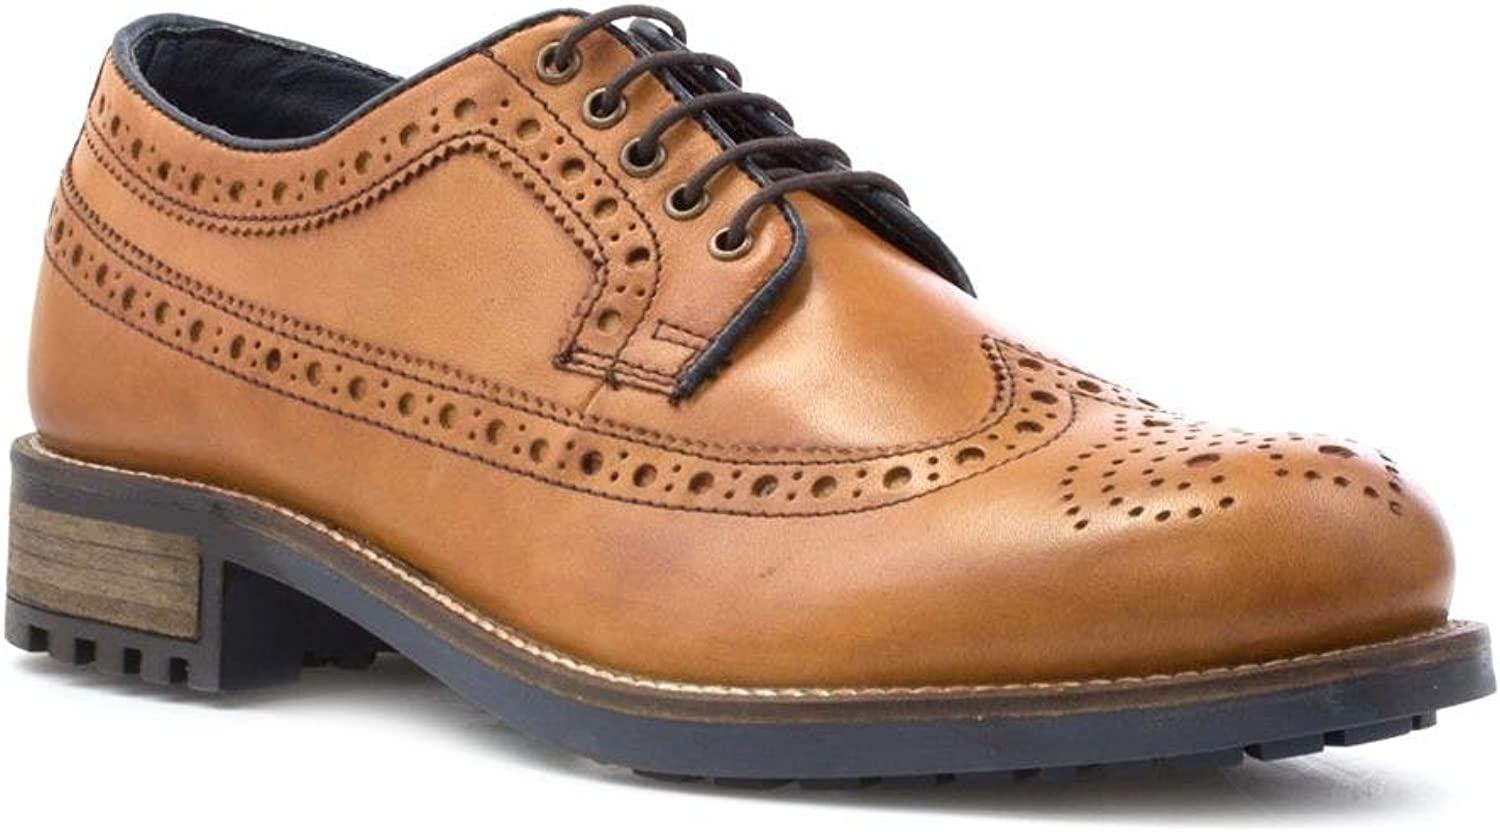 Catesby Mens Leather Lace Up Brogue shoes in Tan